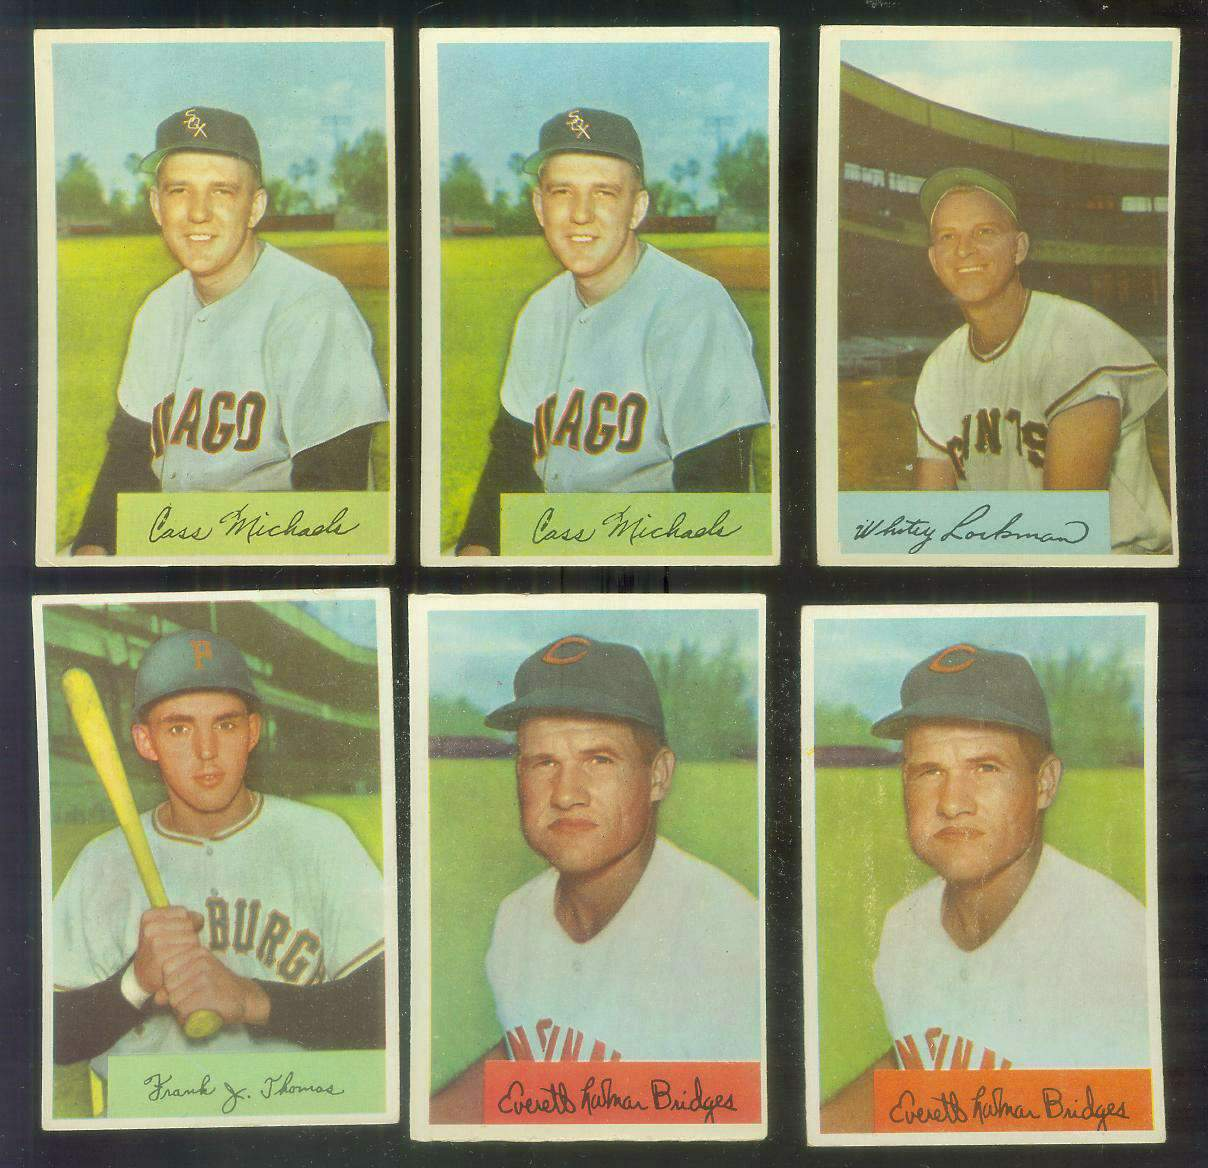 1954 Bowman #156B Rocky Bridges CORRECTED VARIATION '328/475 As.' [#x](Reds Baseball cards value